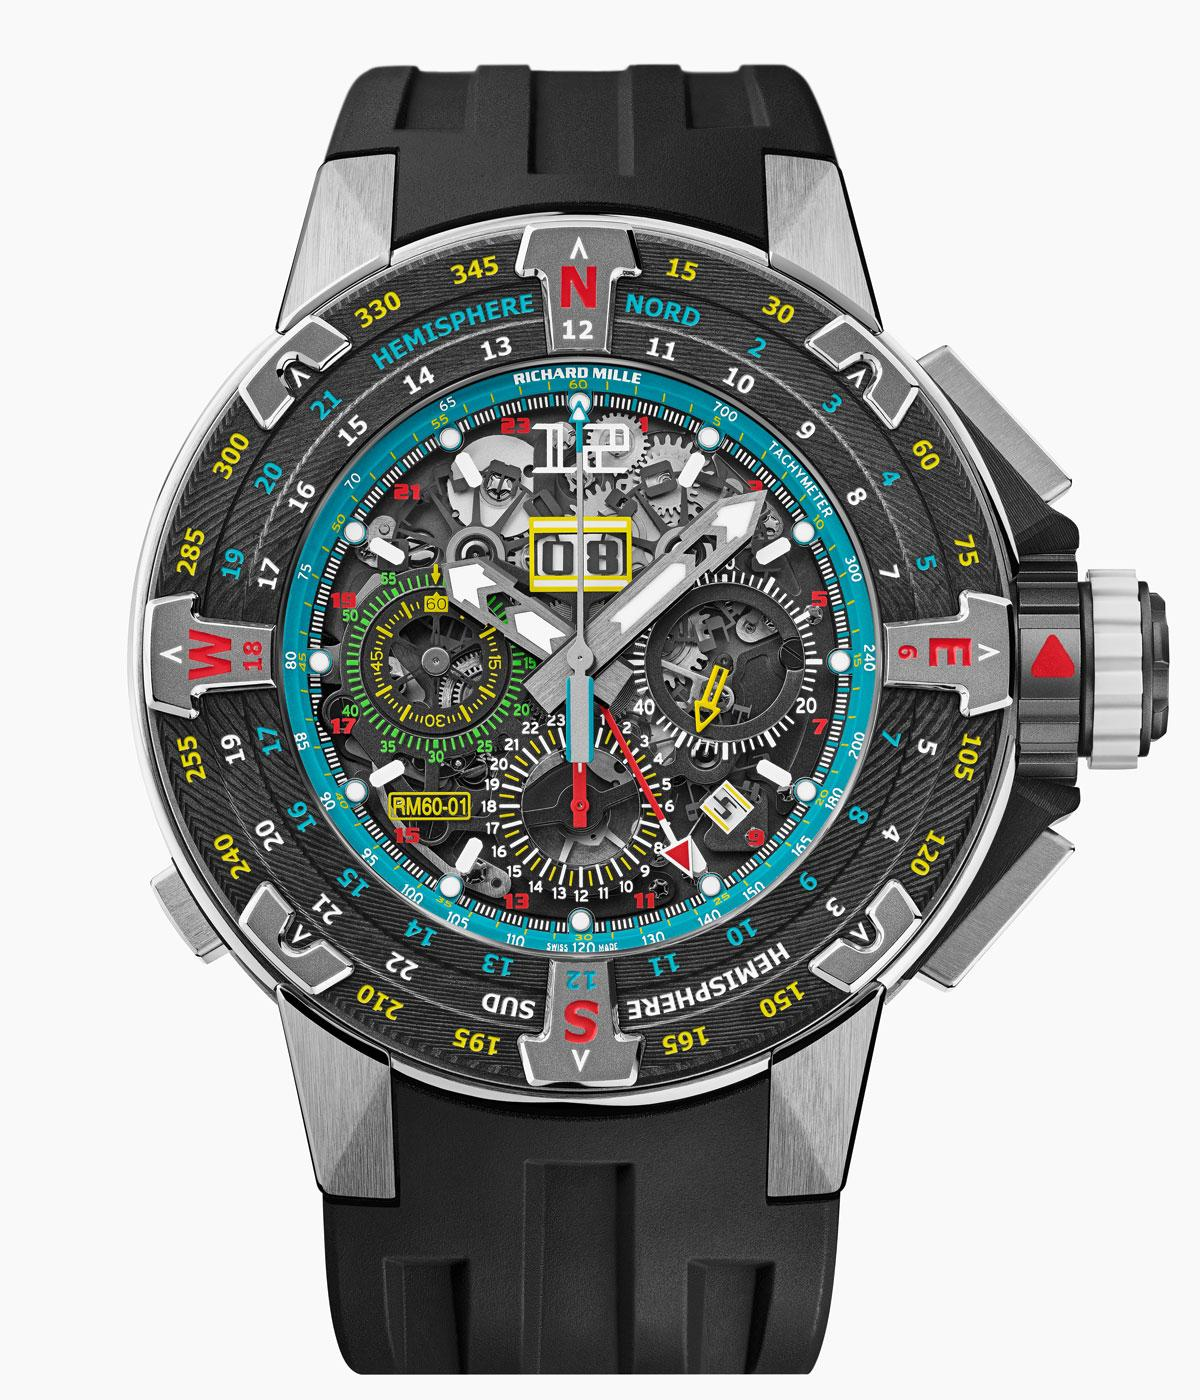 Richard mille watch with a coluorful green dial with multiple time zones